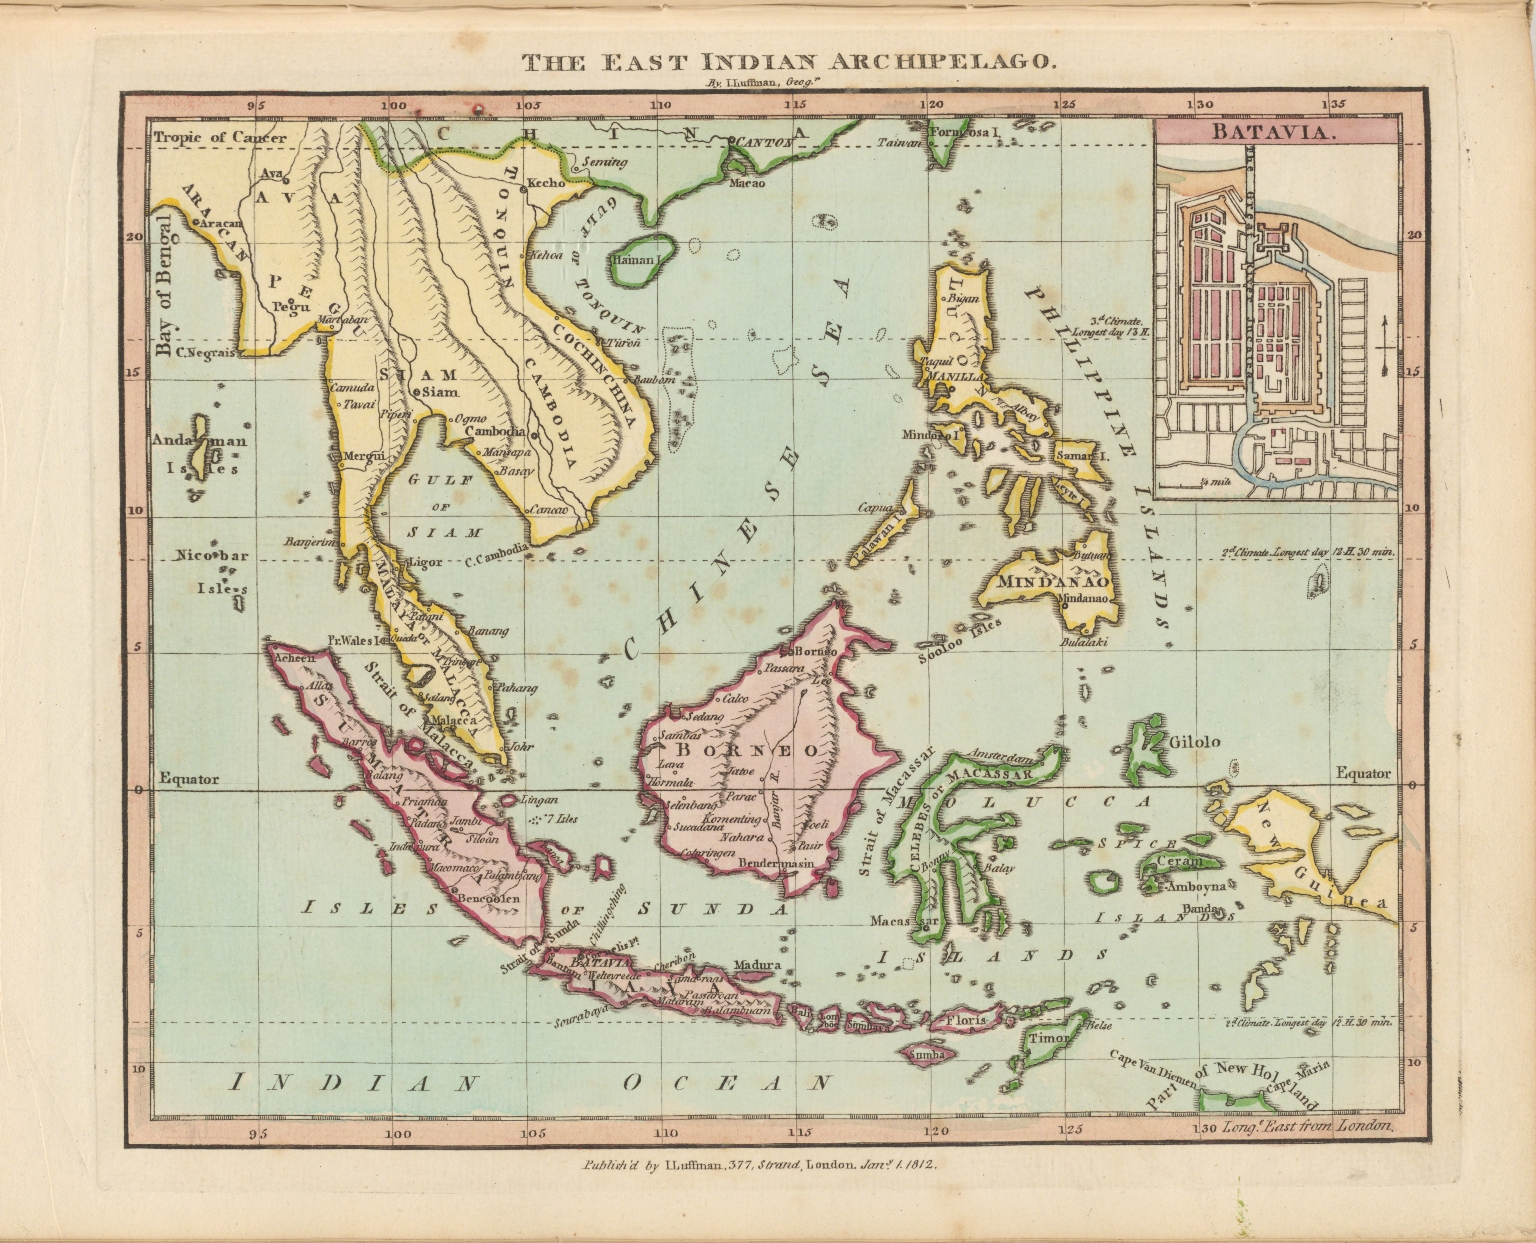 The east Indian archipelago